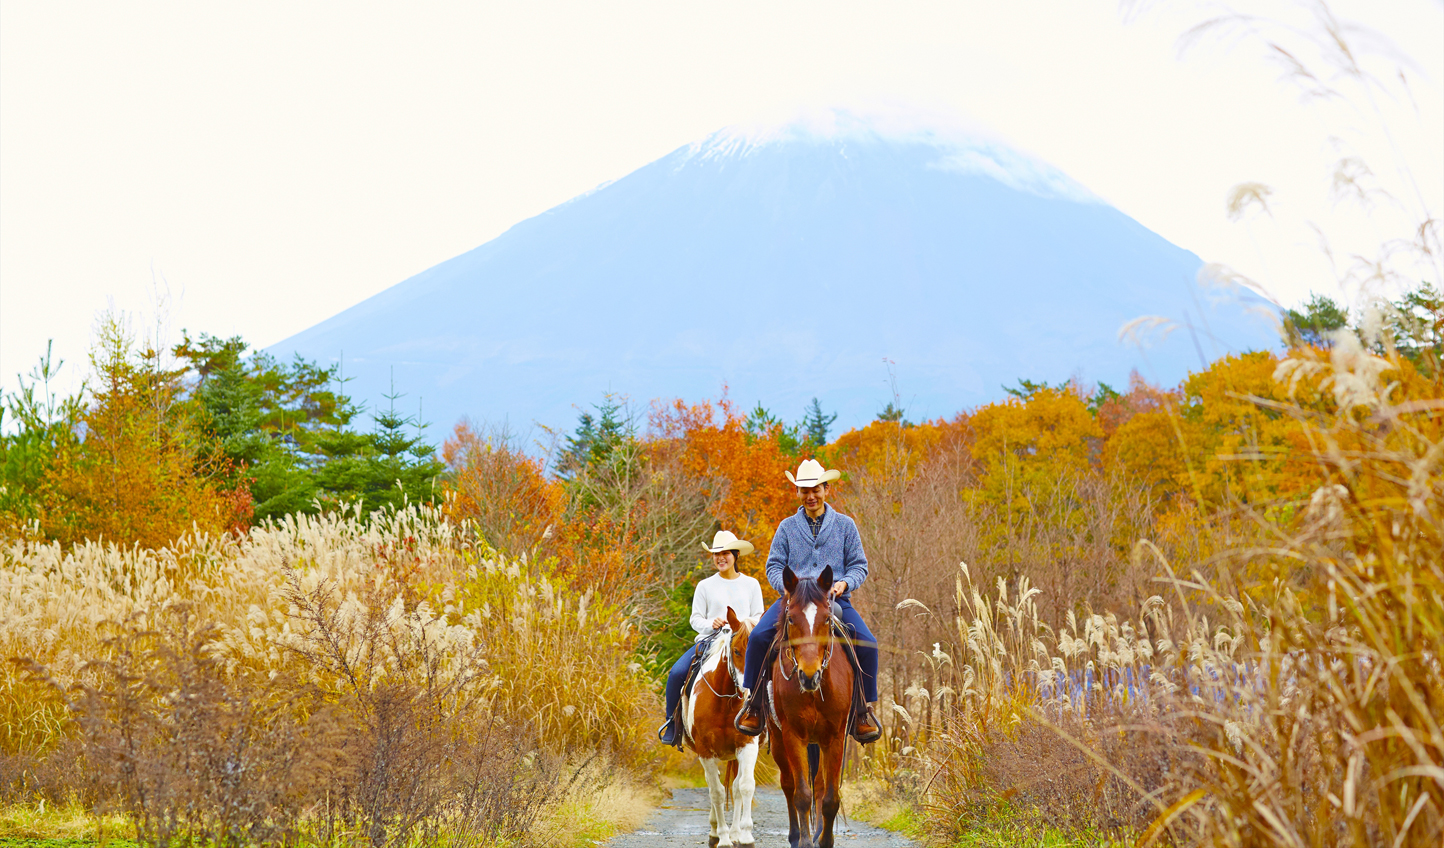 Saddle up and ride through the foothills of Mt. Fuji